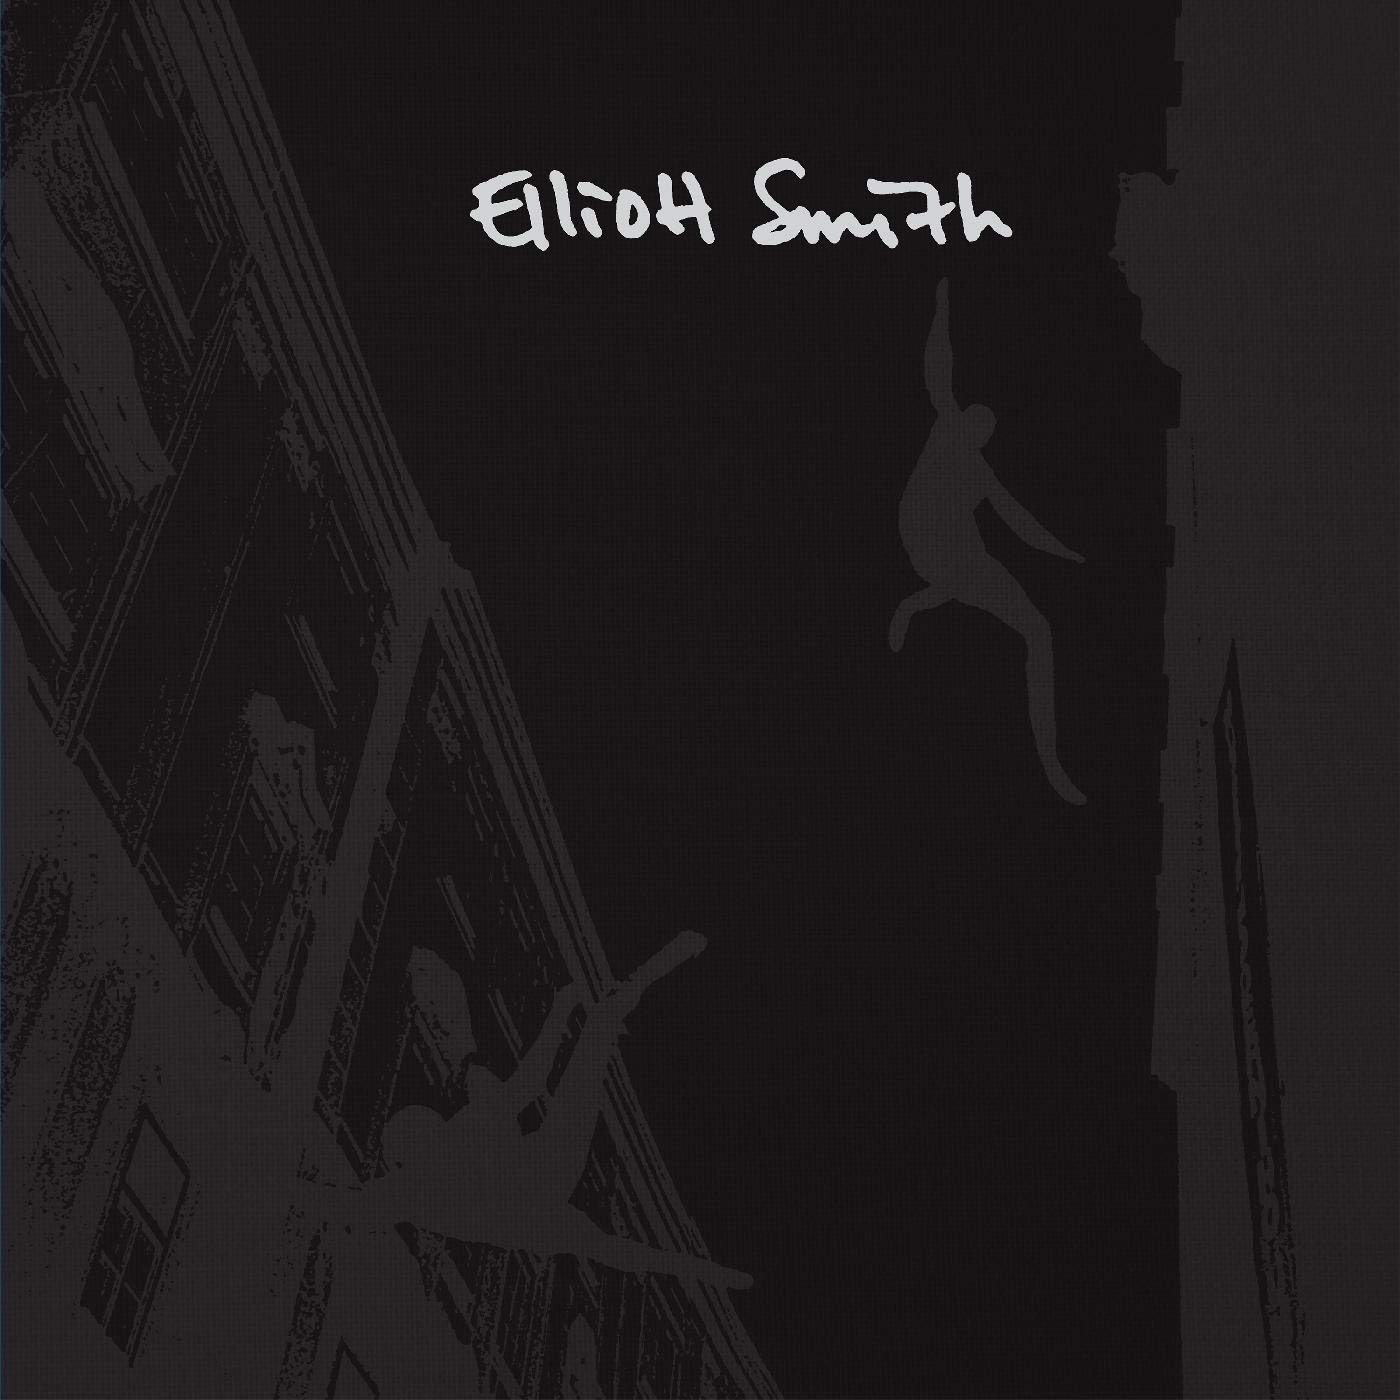 Elliot Smith / 25th anniversary two-disc edition